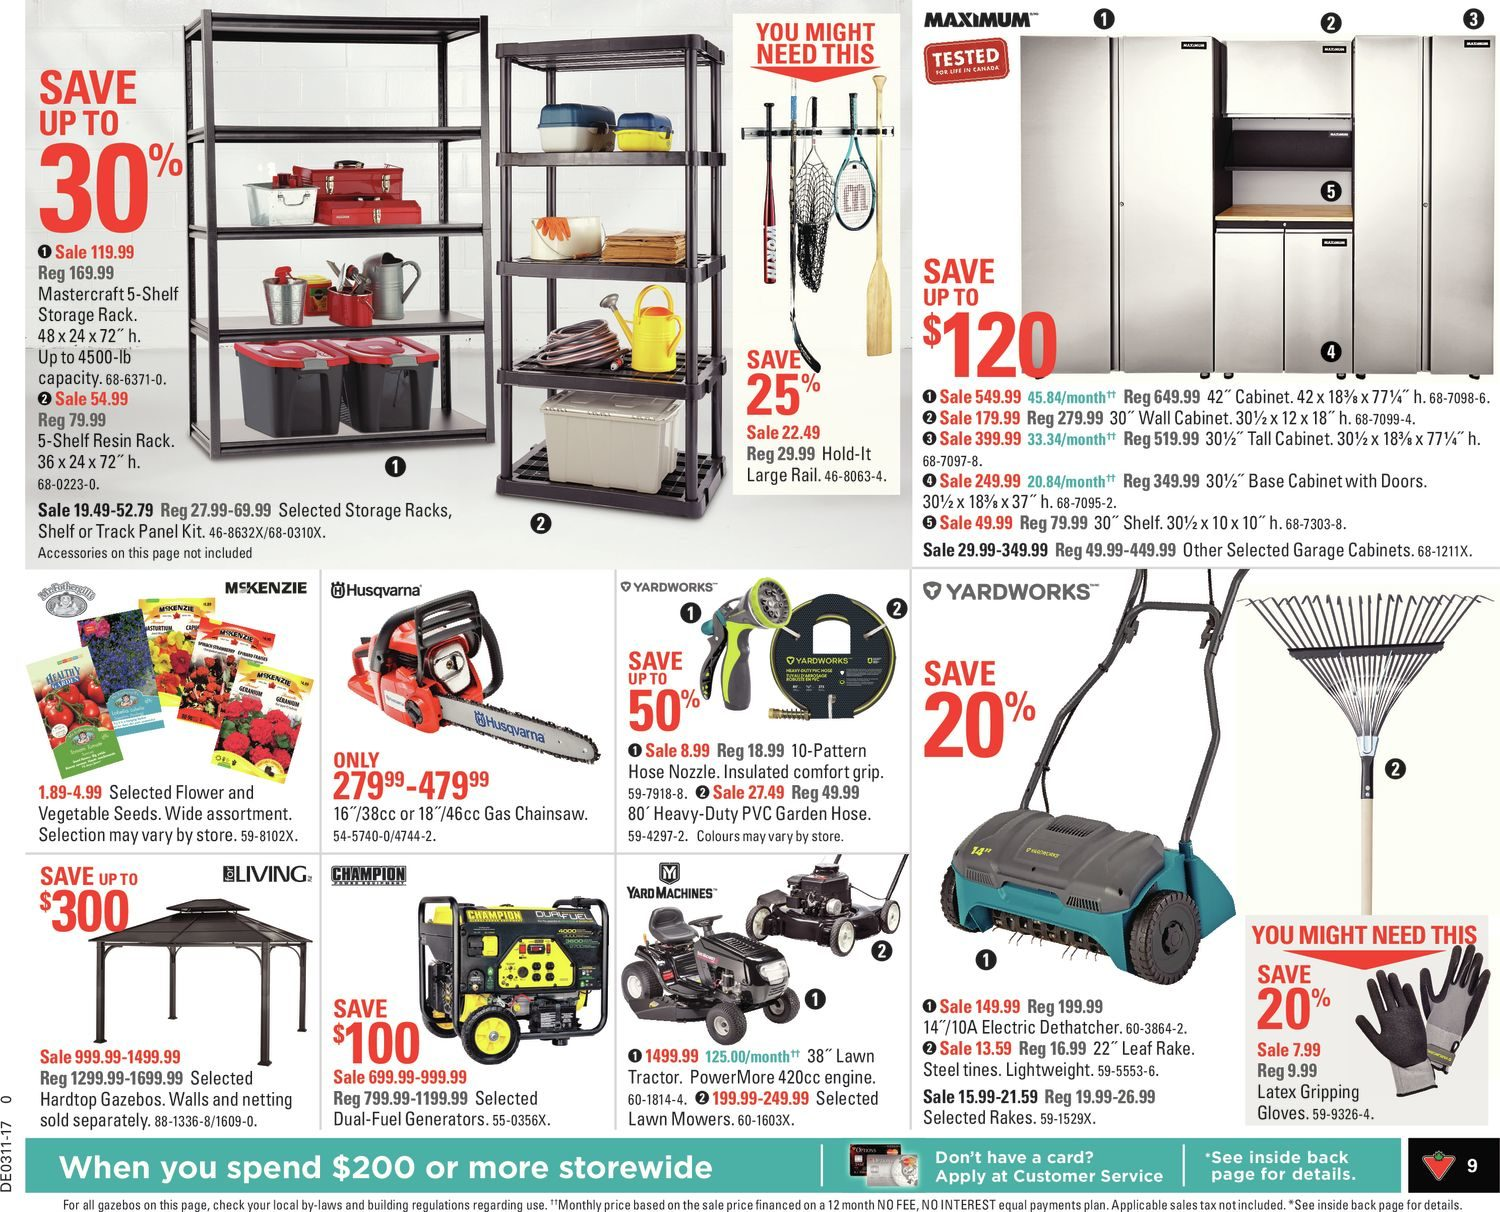 Canadian Tire Weekly Flyer - Weekly - Freshen Things Up! - Mar 10